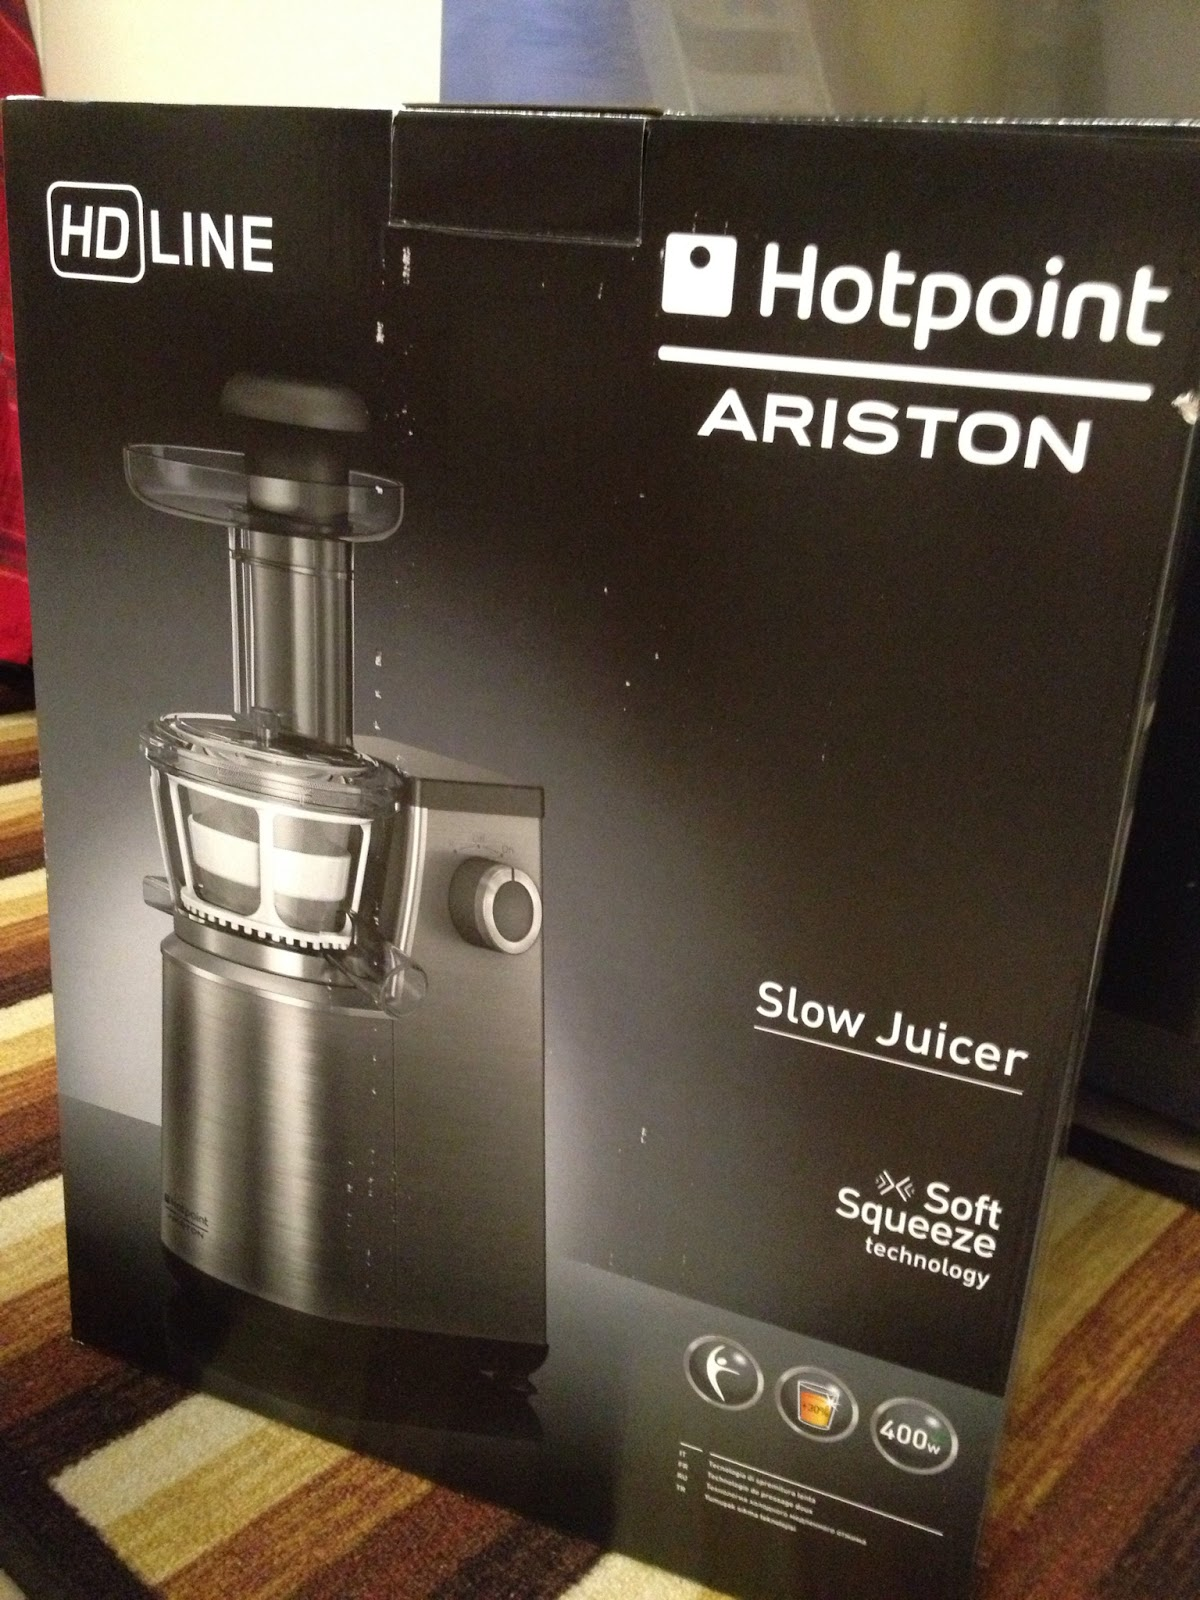 Hotpoint Ariston Slow Juicer Prezzi : ???????: ????Hotpoint ariston Slow juicer